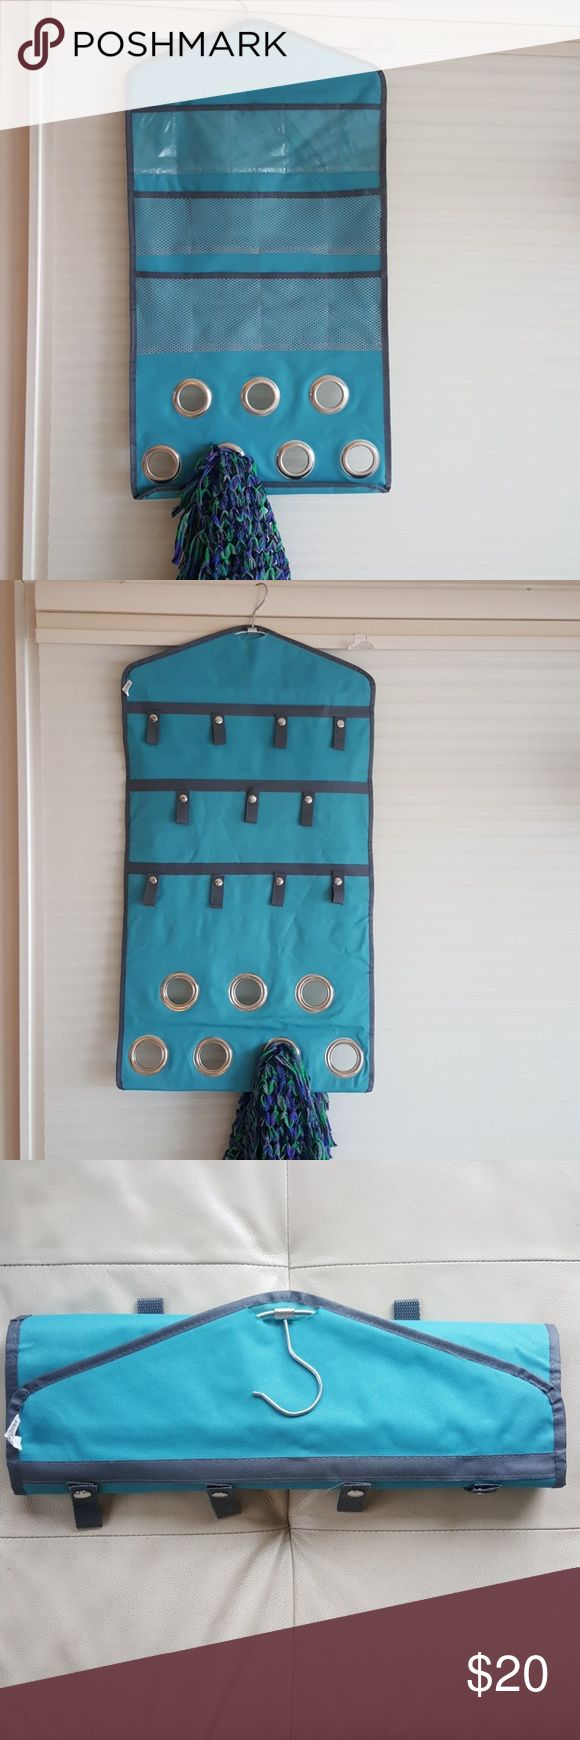 Scarf/accessory holder Hanging accessory holder with 7 open loops for scarves, 11 snapped loops for scarves or belts,  13 pocket cubbies for jewelry or small accessories.  Folds up sms had a built in hanger... so great for travel! Like new condition Accessories